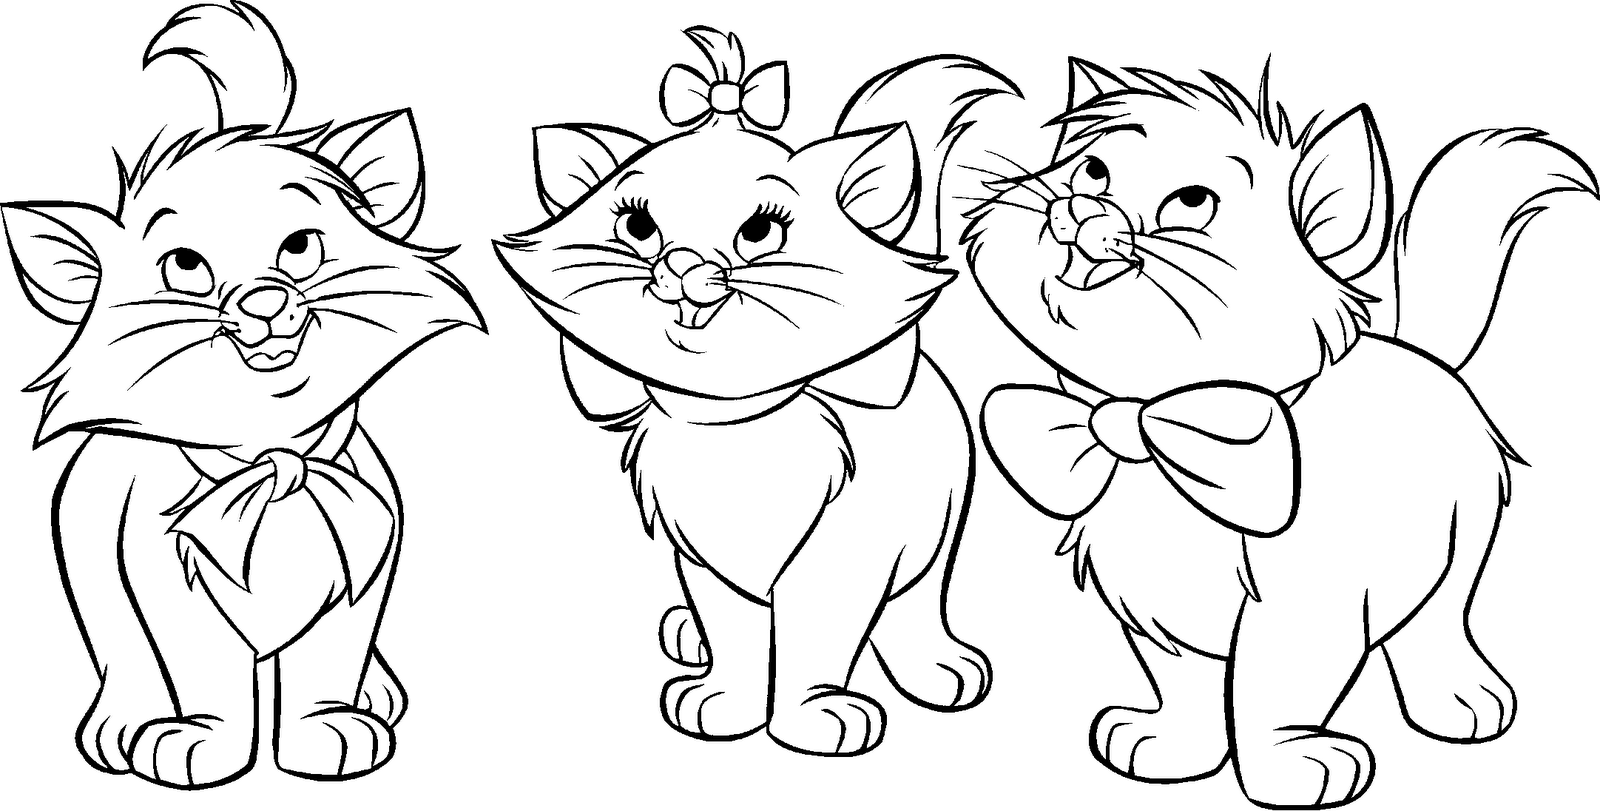 The Aristocats Coloring Page Tattoo Flash Characters Aristocats Coloring Page